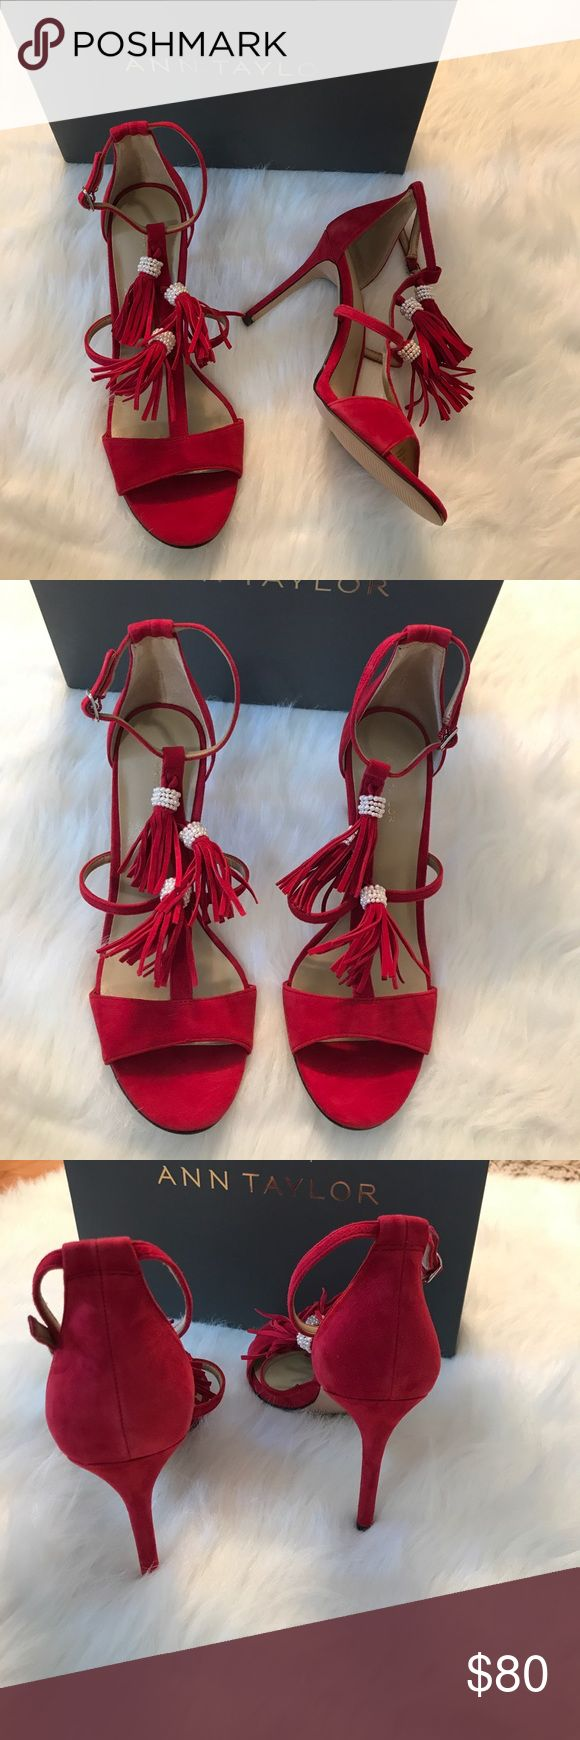 ANN TAYLOR ADINA FRINGE SUEDE PUMP Beautiful and sexy! Take these beauties to work or out to play! The perfect wardrobe staple to complete any outfit! 100% leather/ color: real red adorned with red tassels and beautiful pearls around the tassels. A must have shoe for the Summer! Size: 7.5/ Ann Taylor Shoes Heels